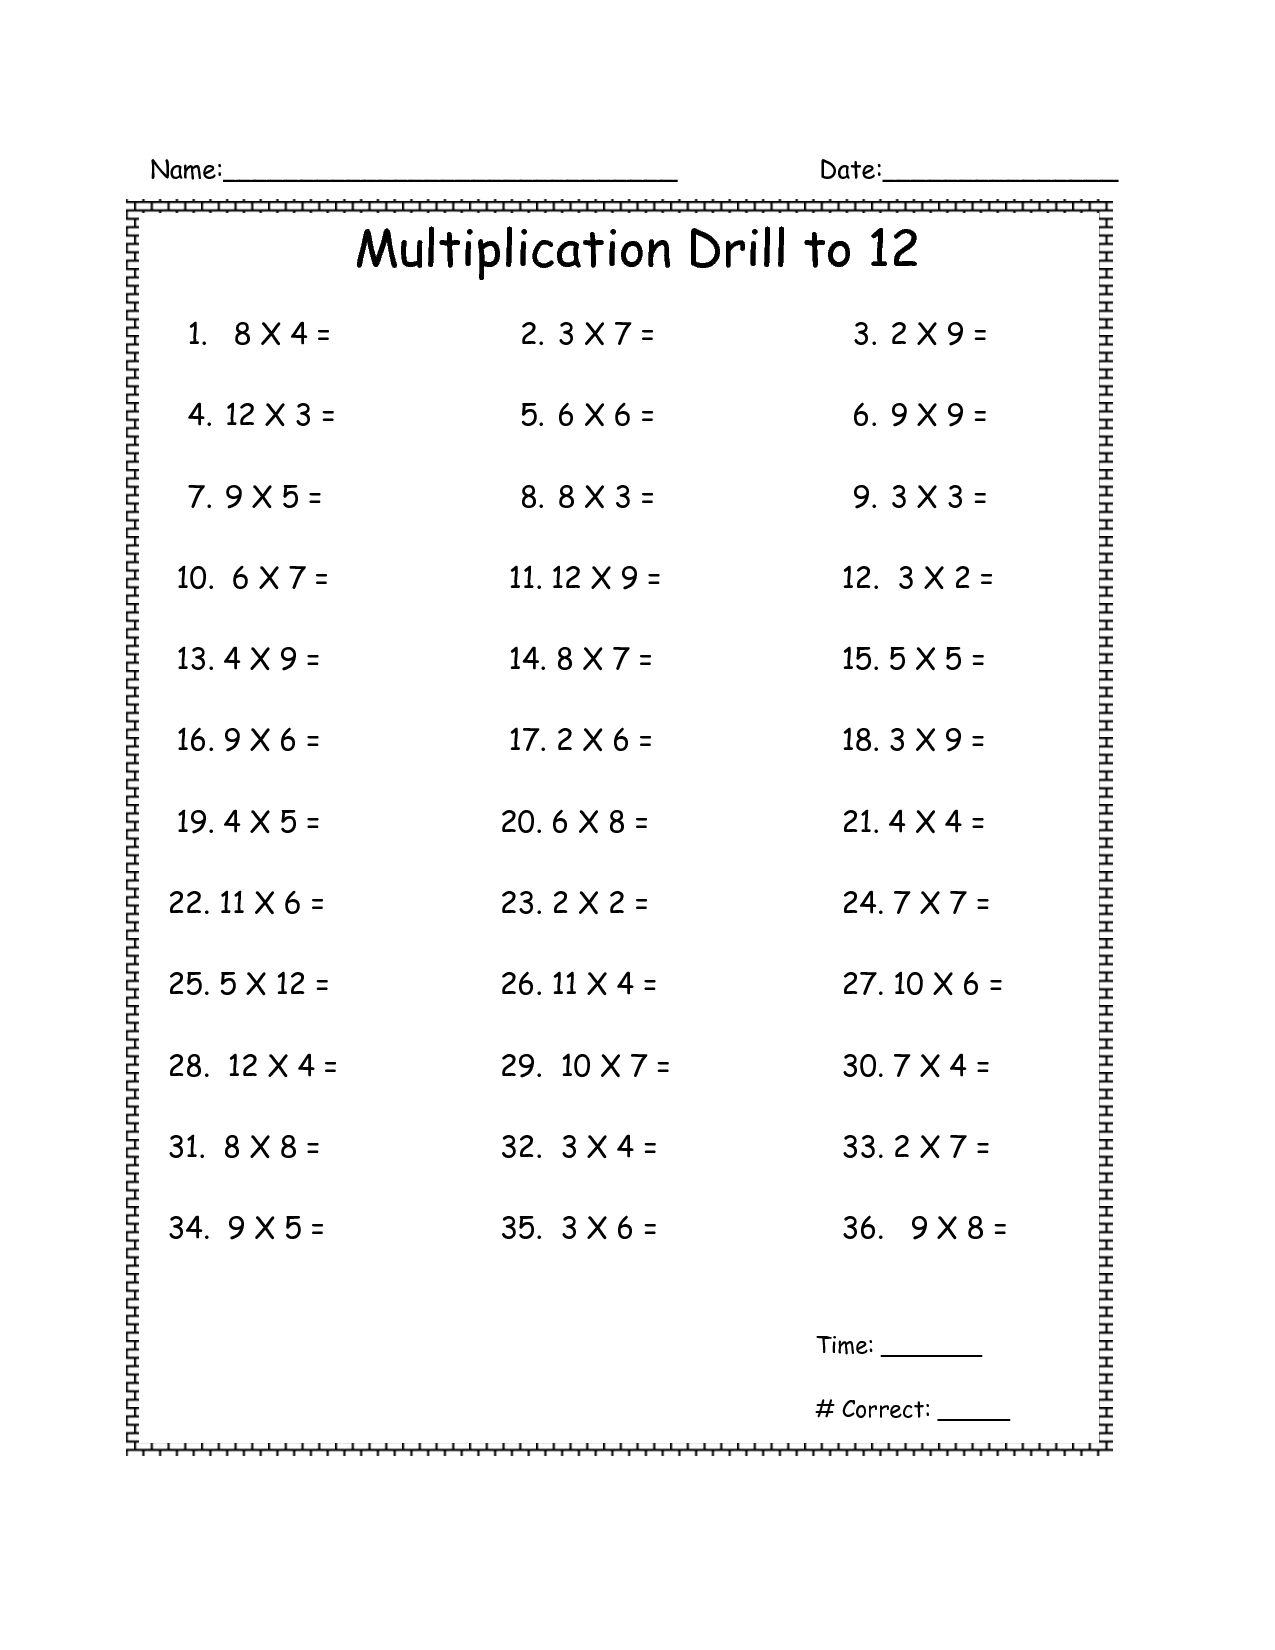 14 Best Images Of Times Table Drill Worksheets 4th Grade